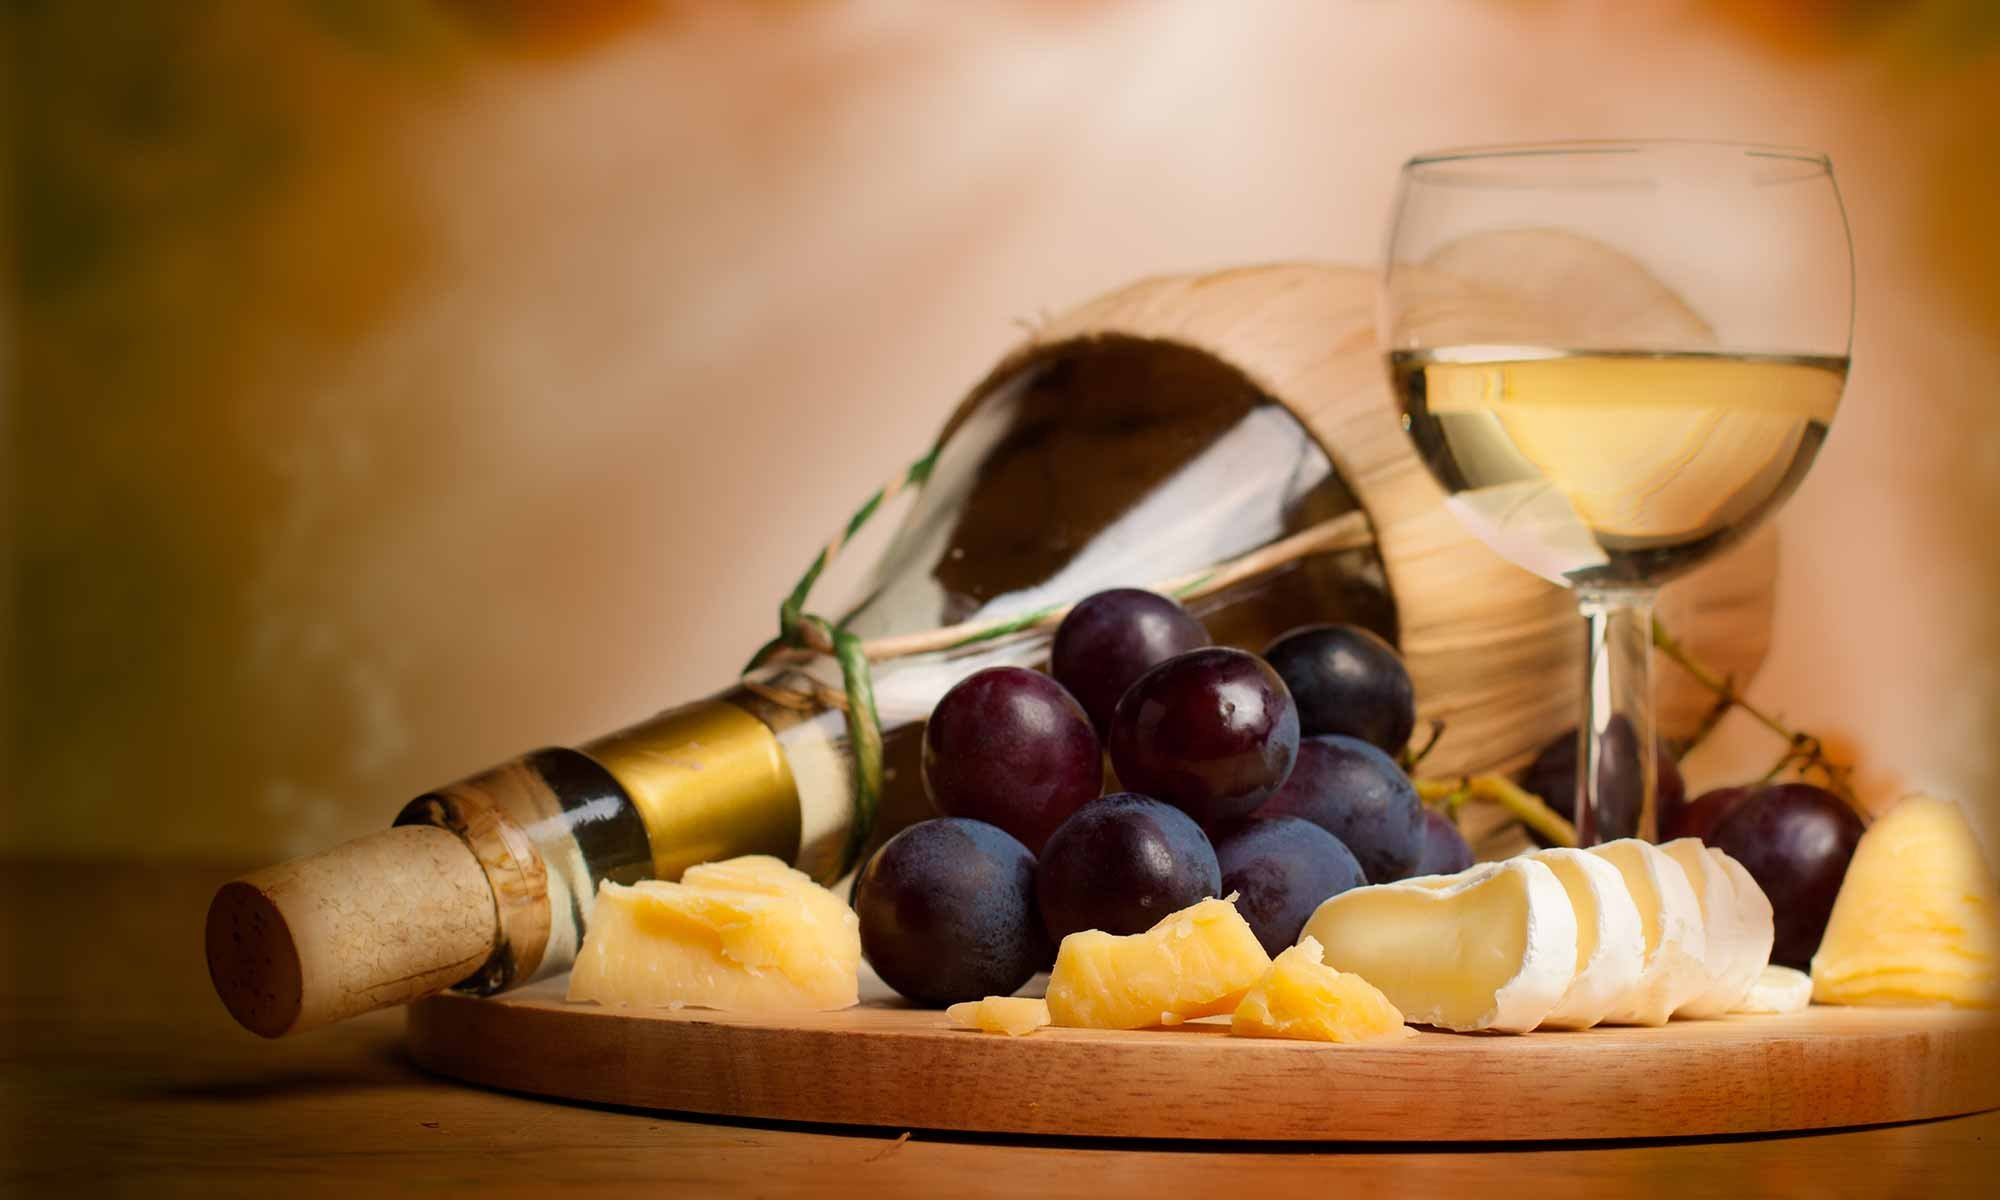 Wine, Grapes, and Cheese